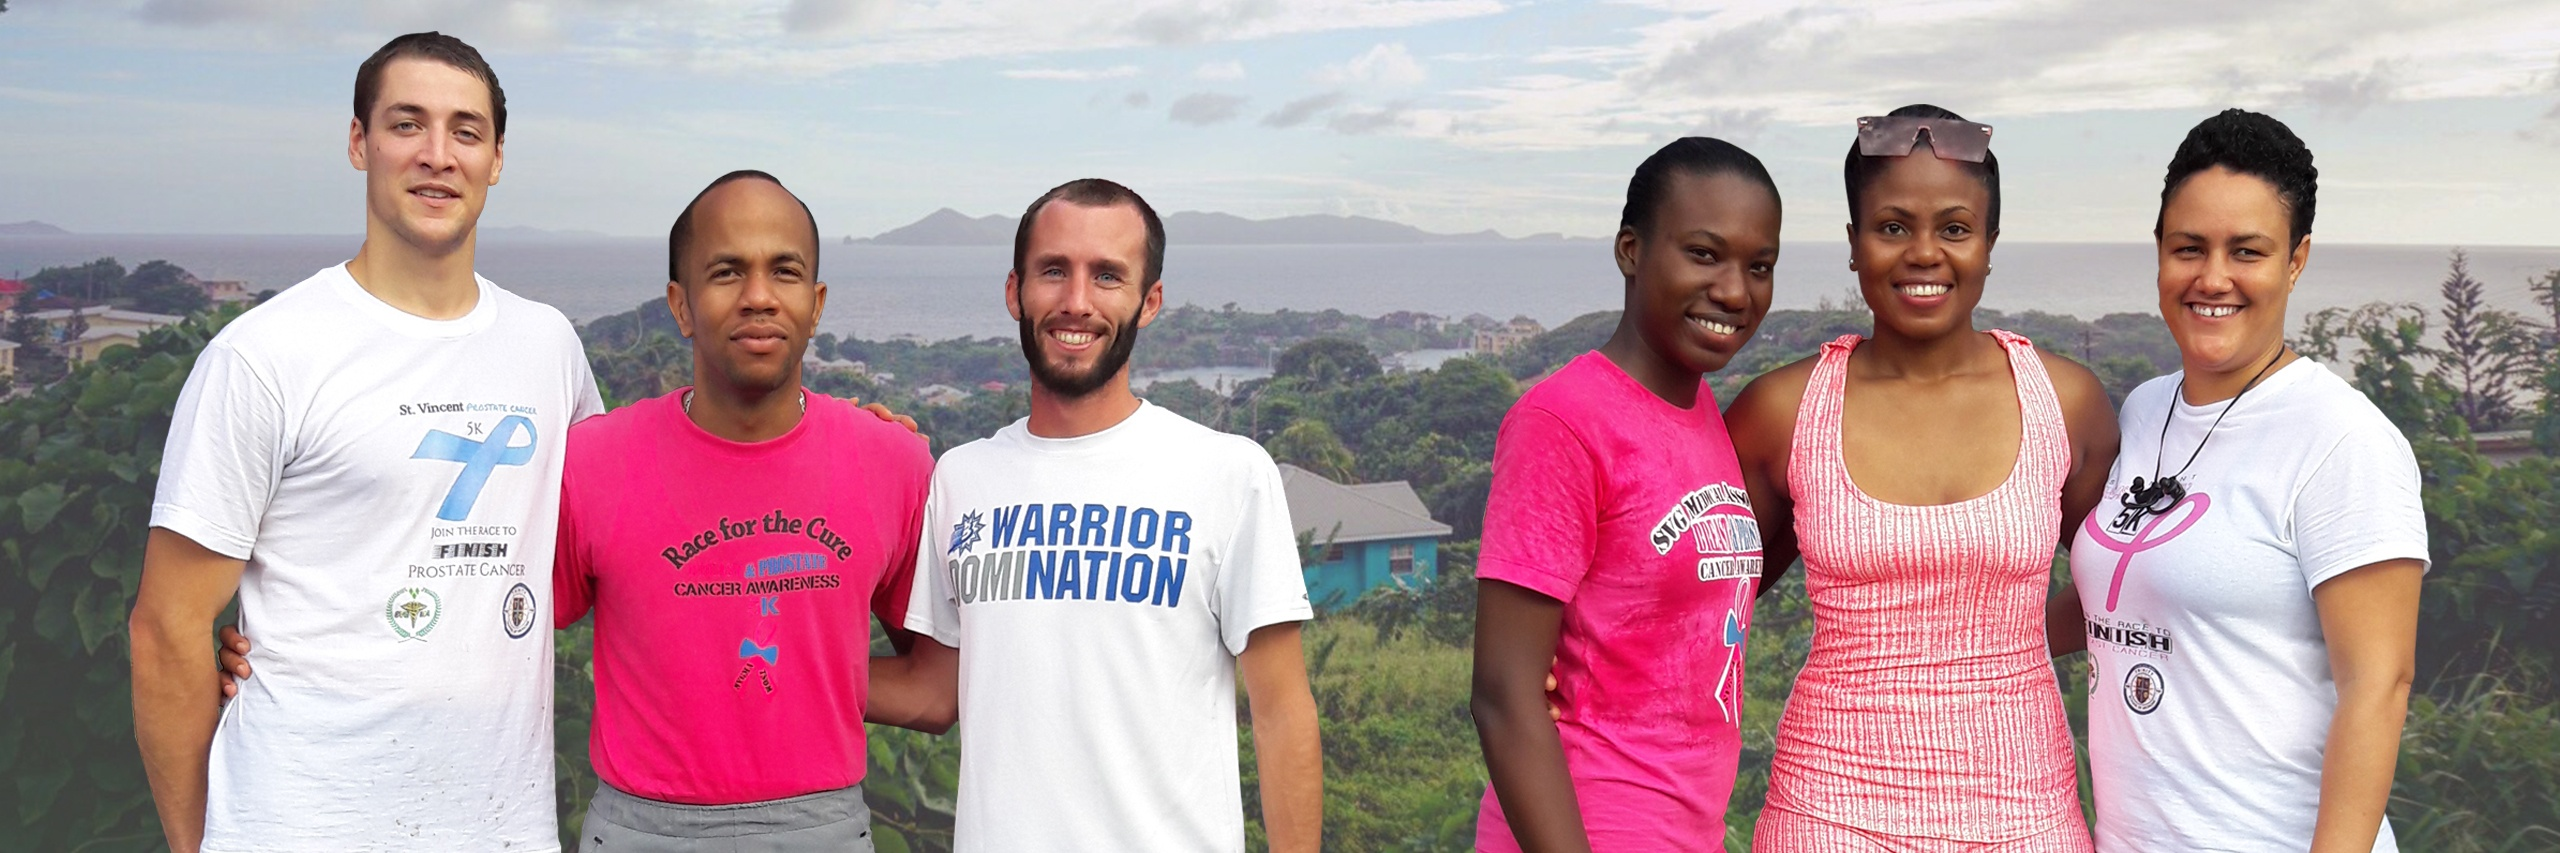 Trinity Students Hold 5k for Breast and Prostate Cancer on St. Vincent